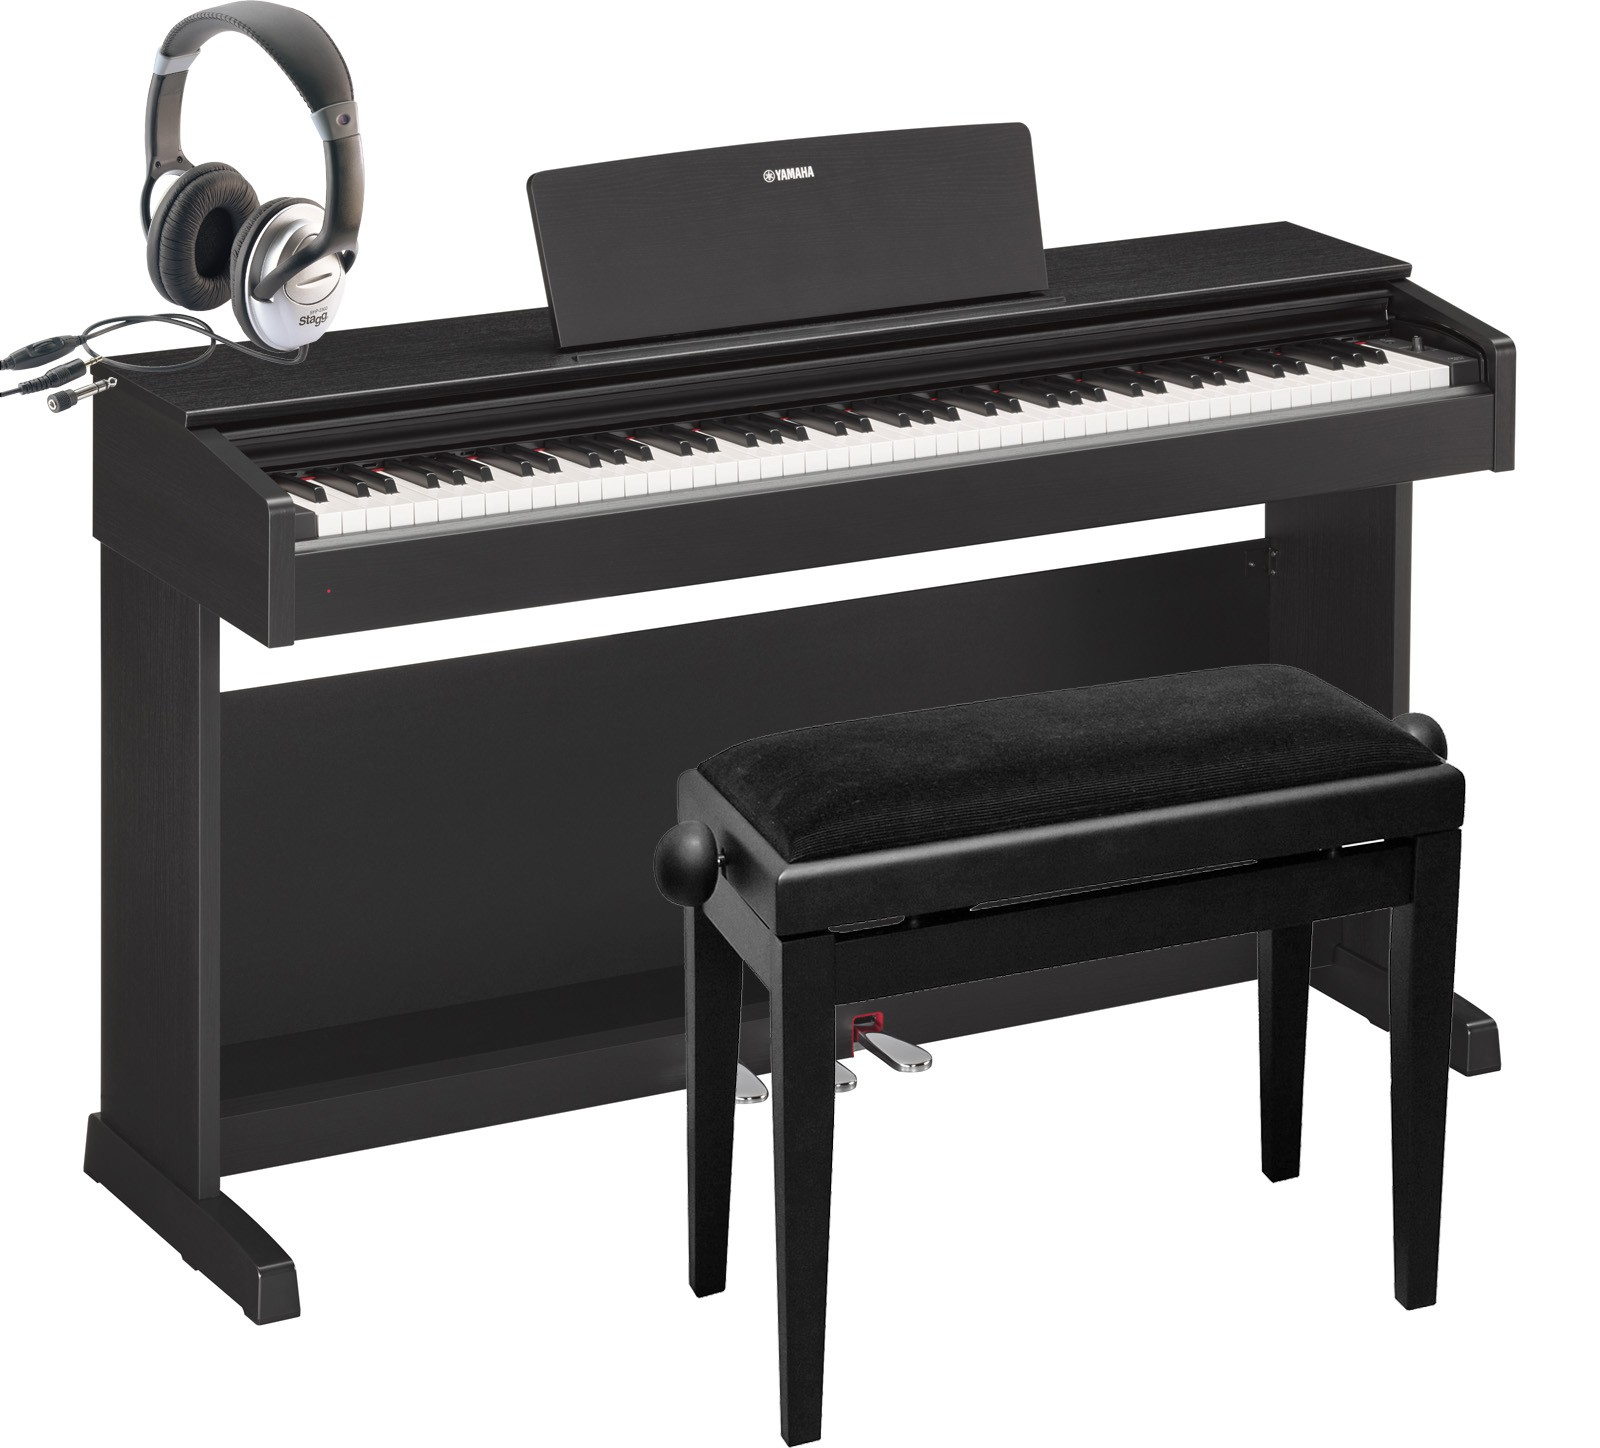 e piano yamaha ydp 142 schwarz set abverkauf ydp142. Black Bedroom Furniture Sets. Home Design Ideas